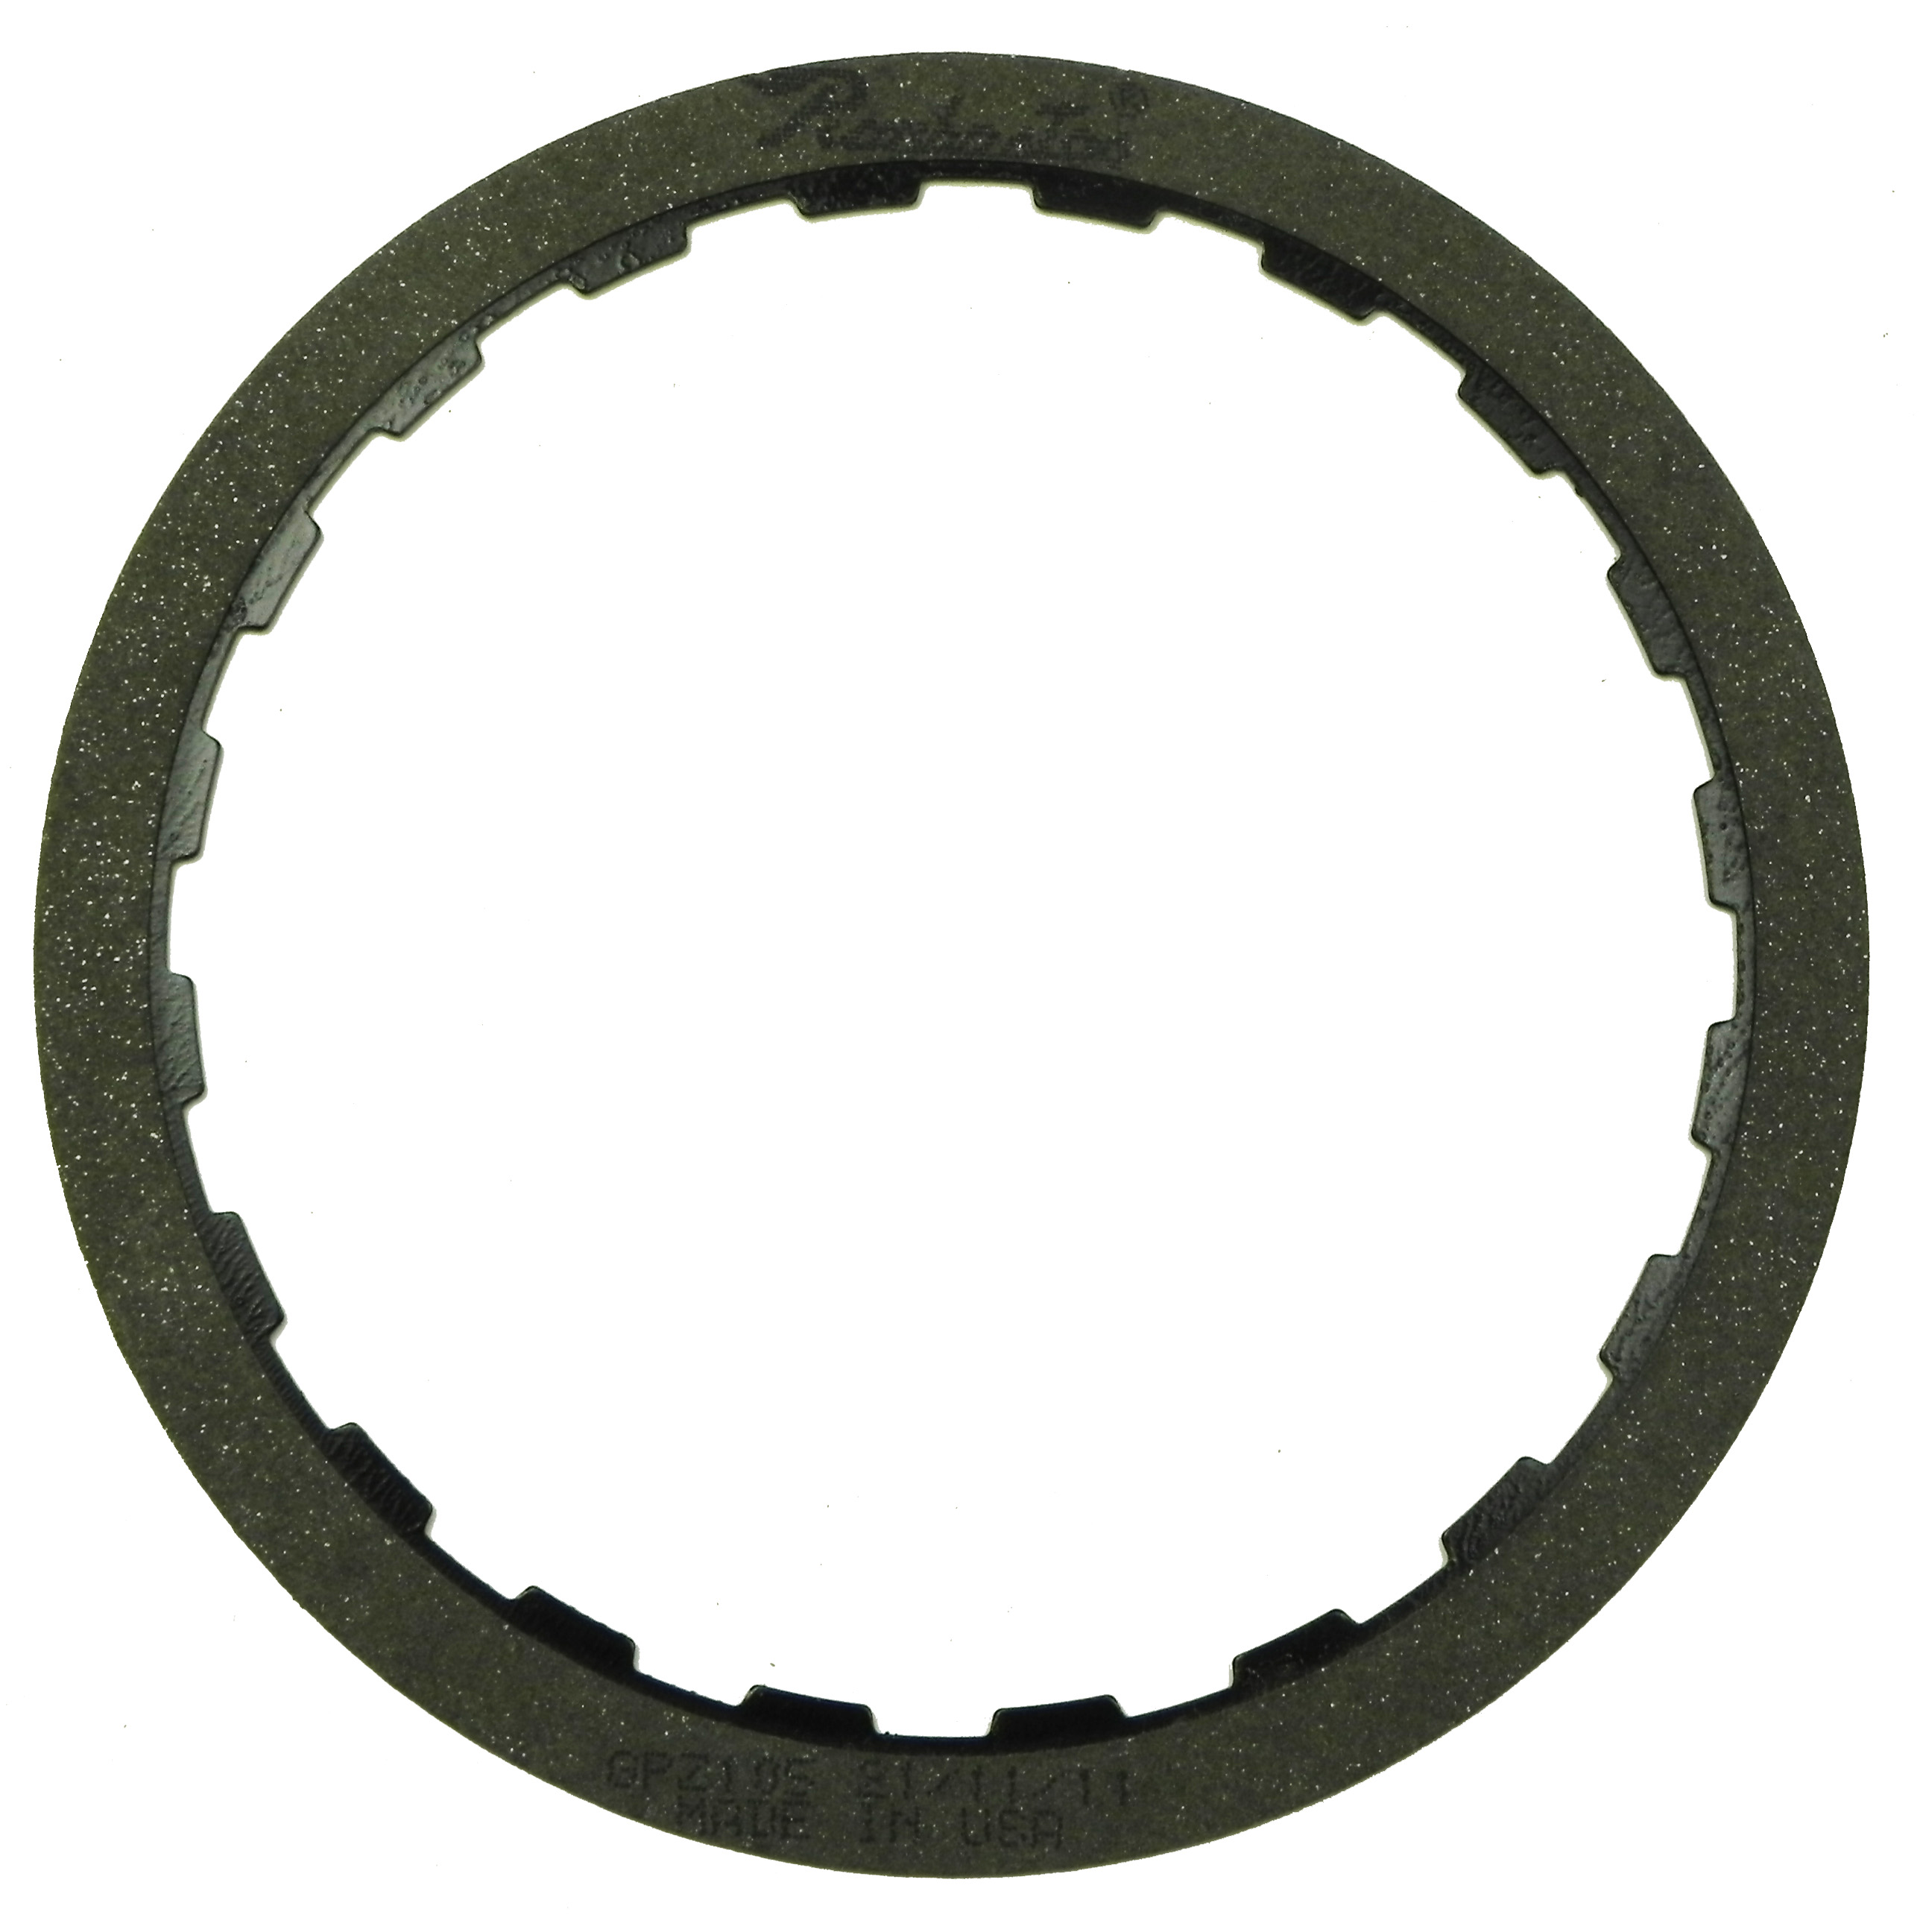 4L60E, 4L65E 3-4 .065 GPZ Friction Clutch Plate